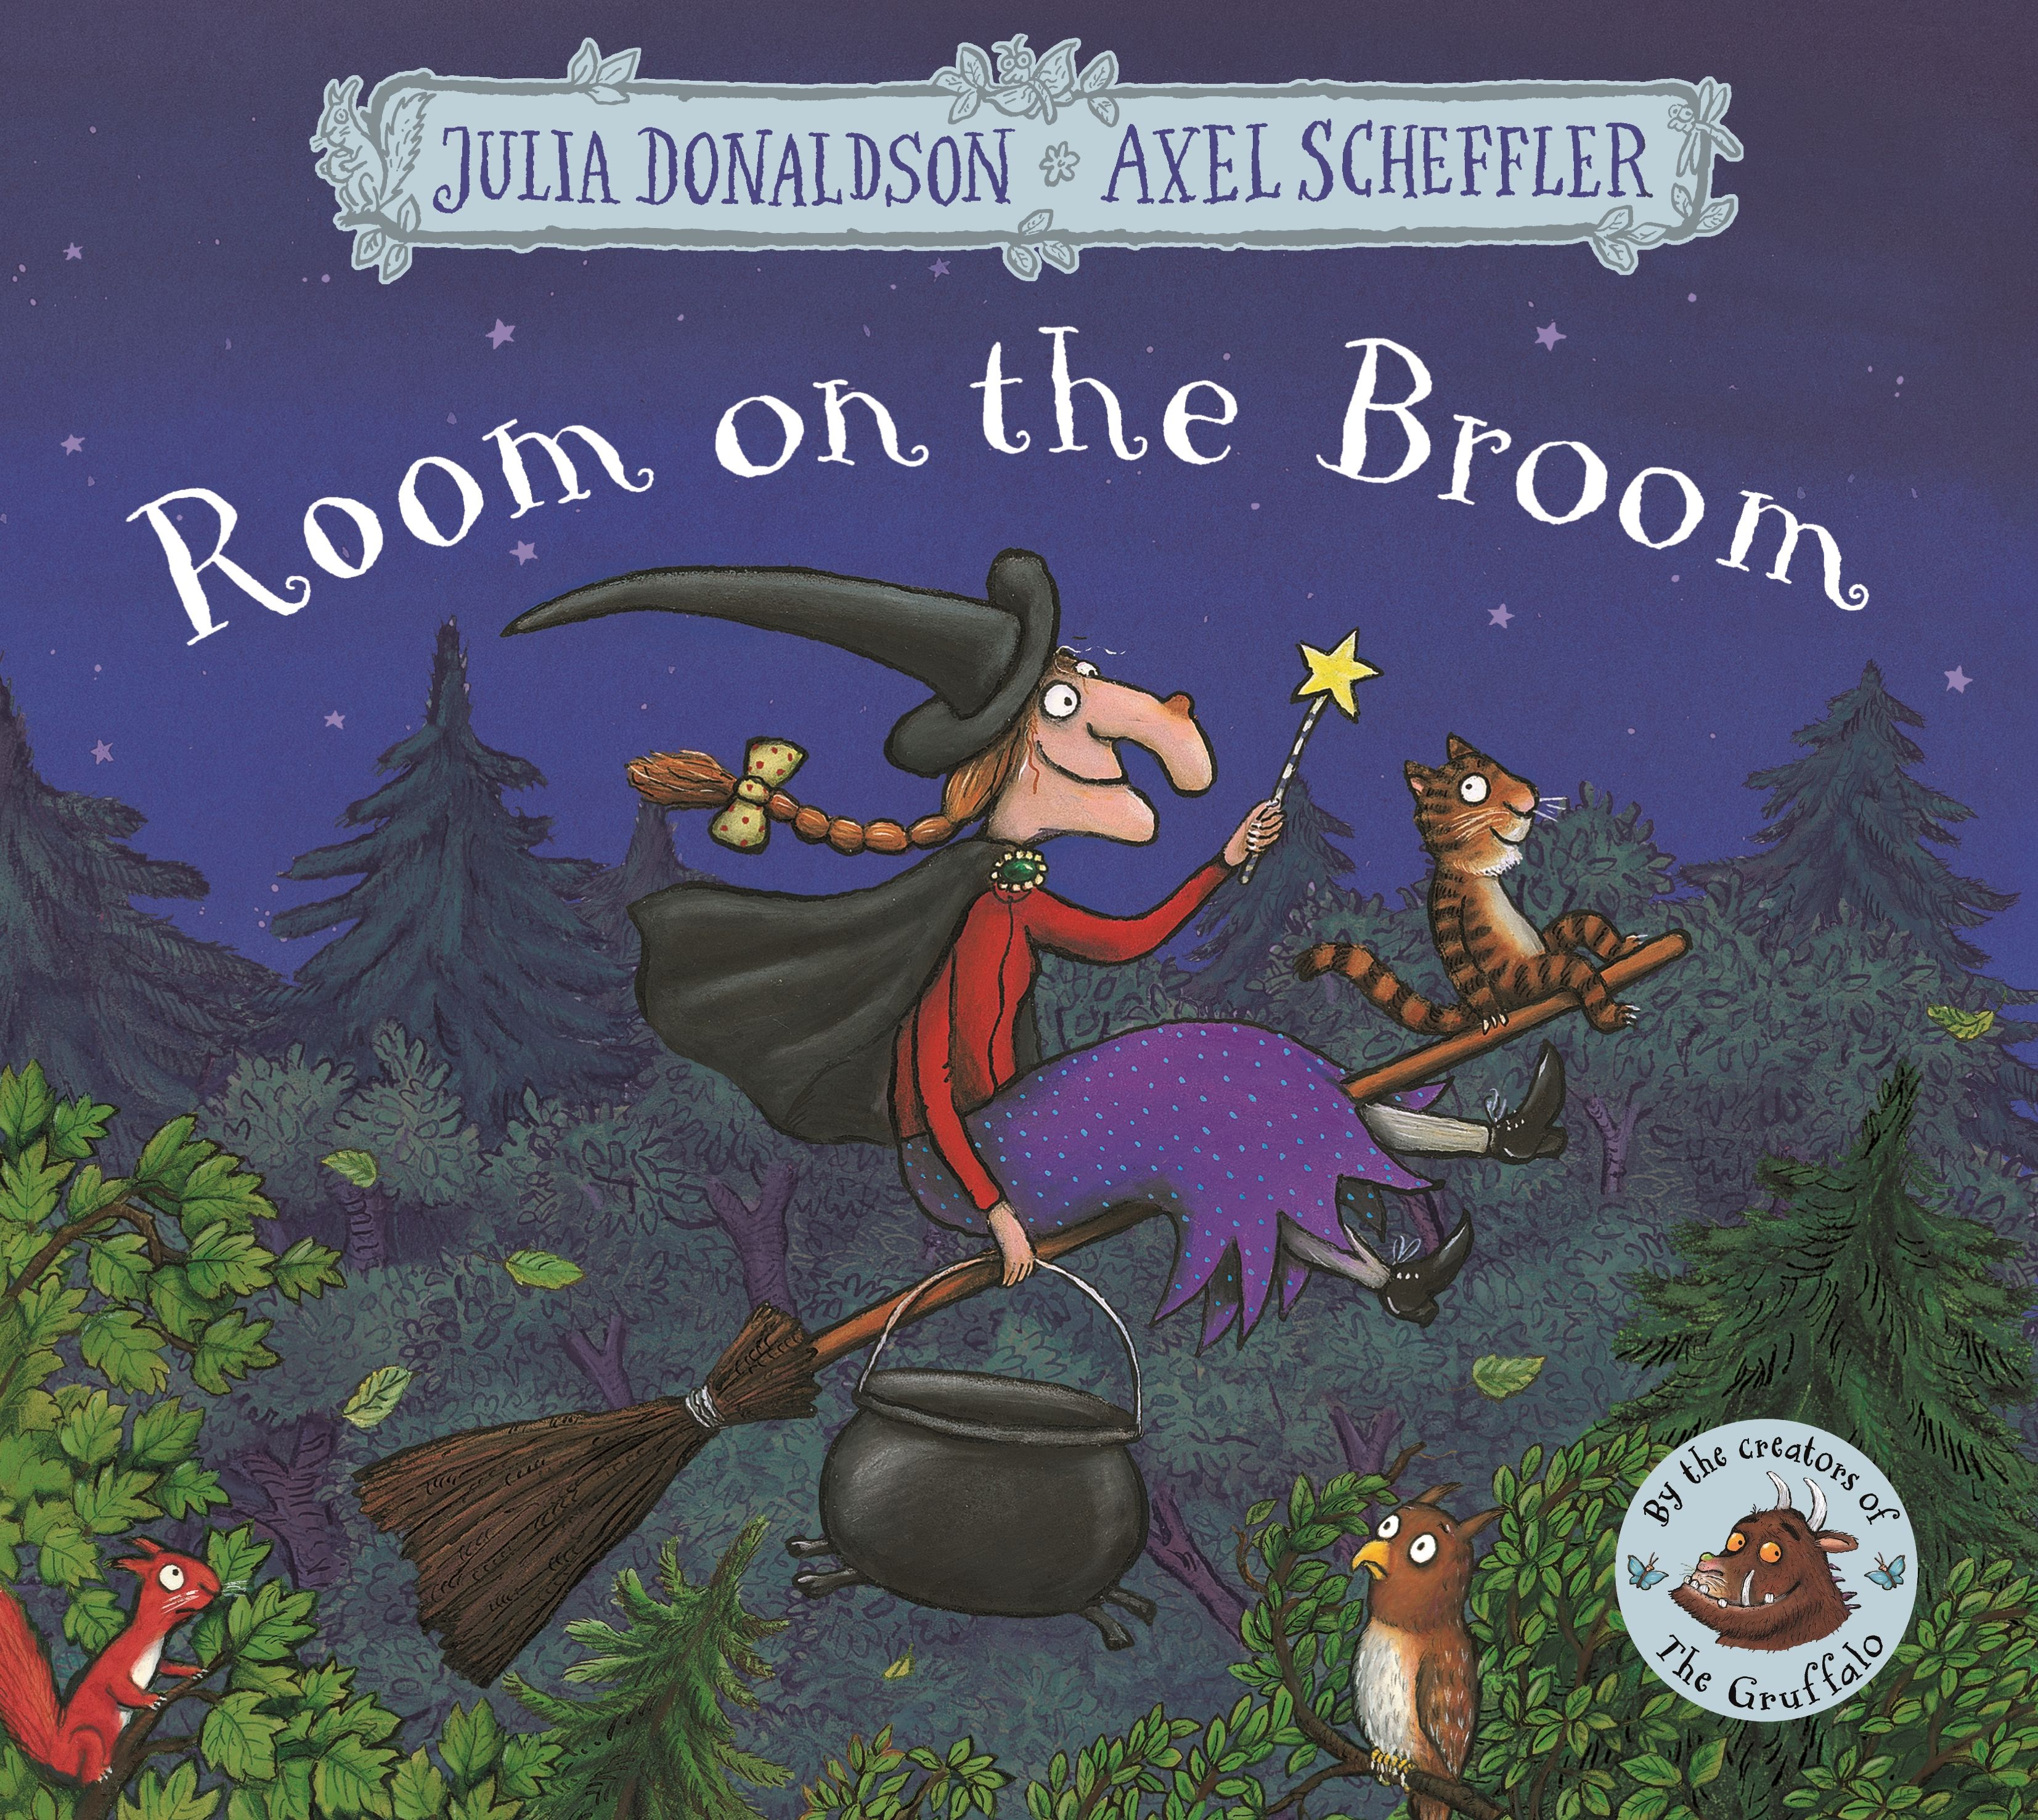 5-7 AÑOS. Room on the broom / Julia Donaldson. The witch had a cat, and a very tall hat and long ginger hair which she wore in a plait. How the cat purred and how the witched grinned, as they sat on their broomstick and flew through the wind.'